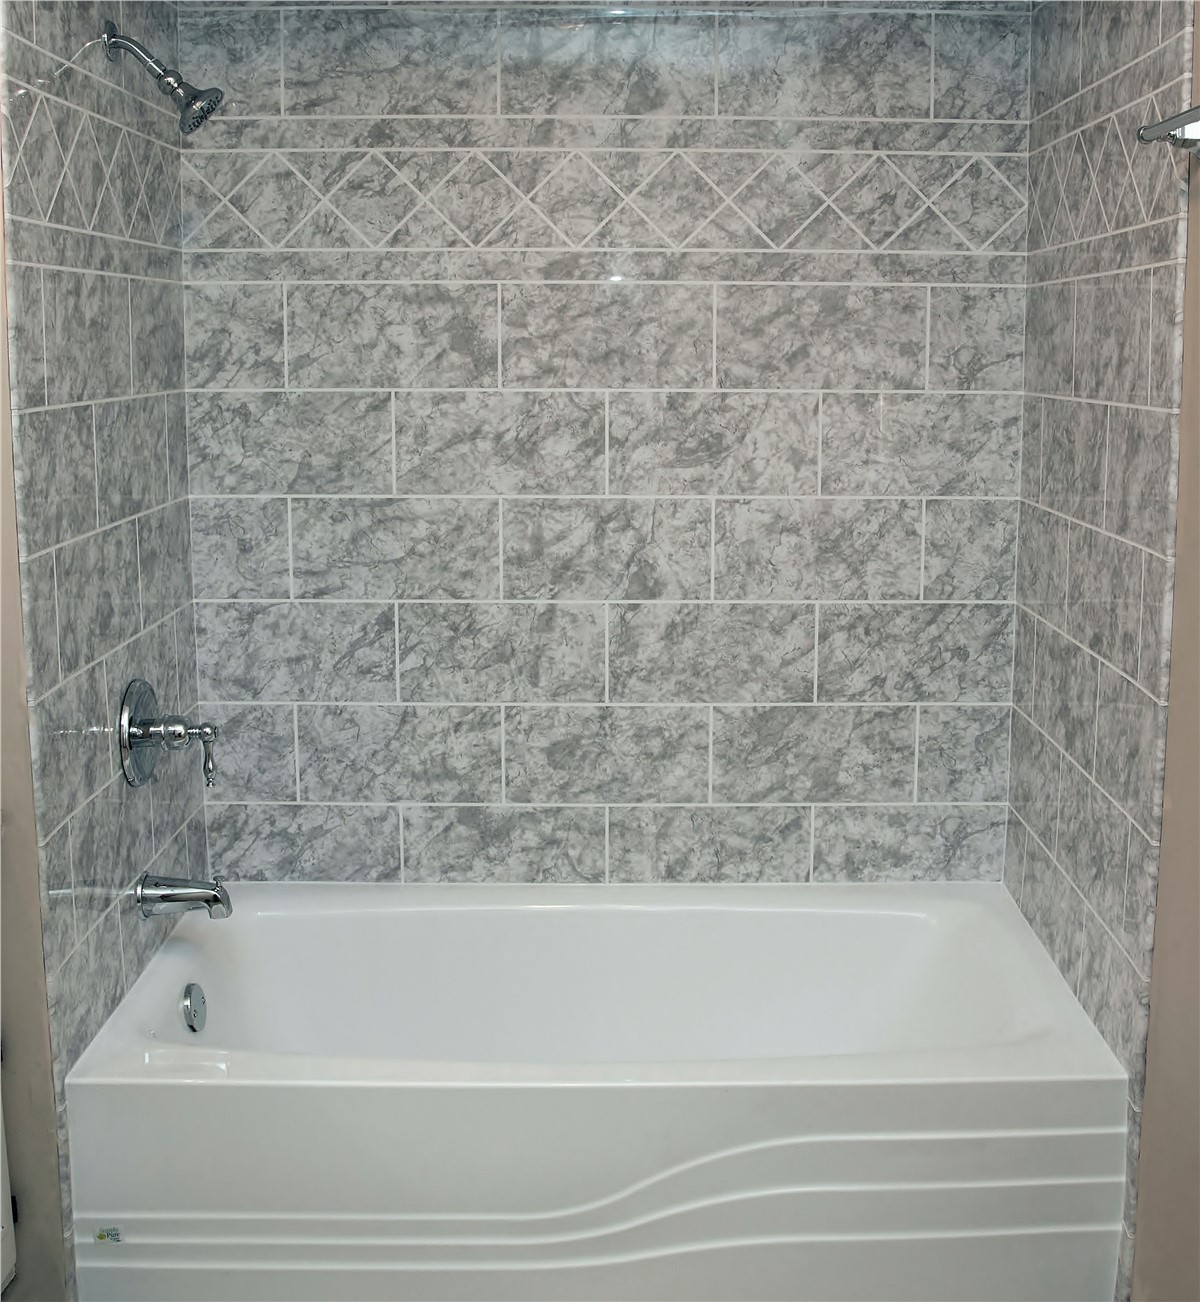 One day bath remodel ct bath remodeling bath remodelers ct for Bath remodel one day